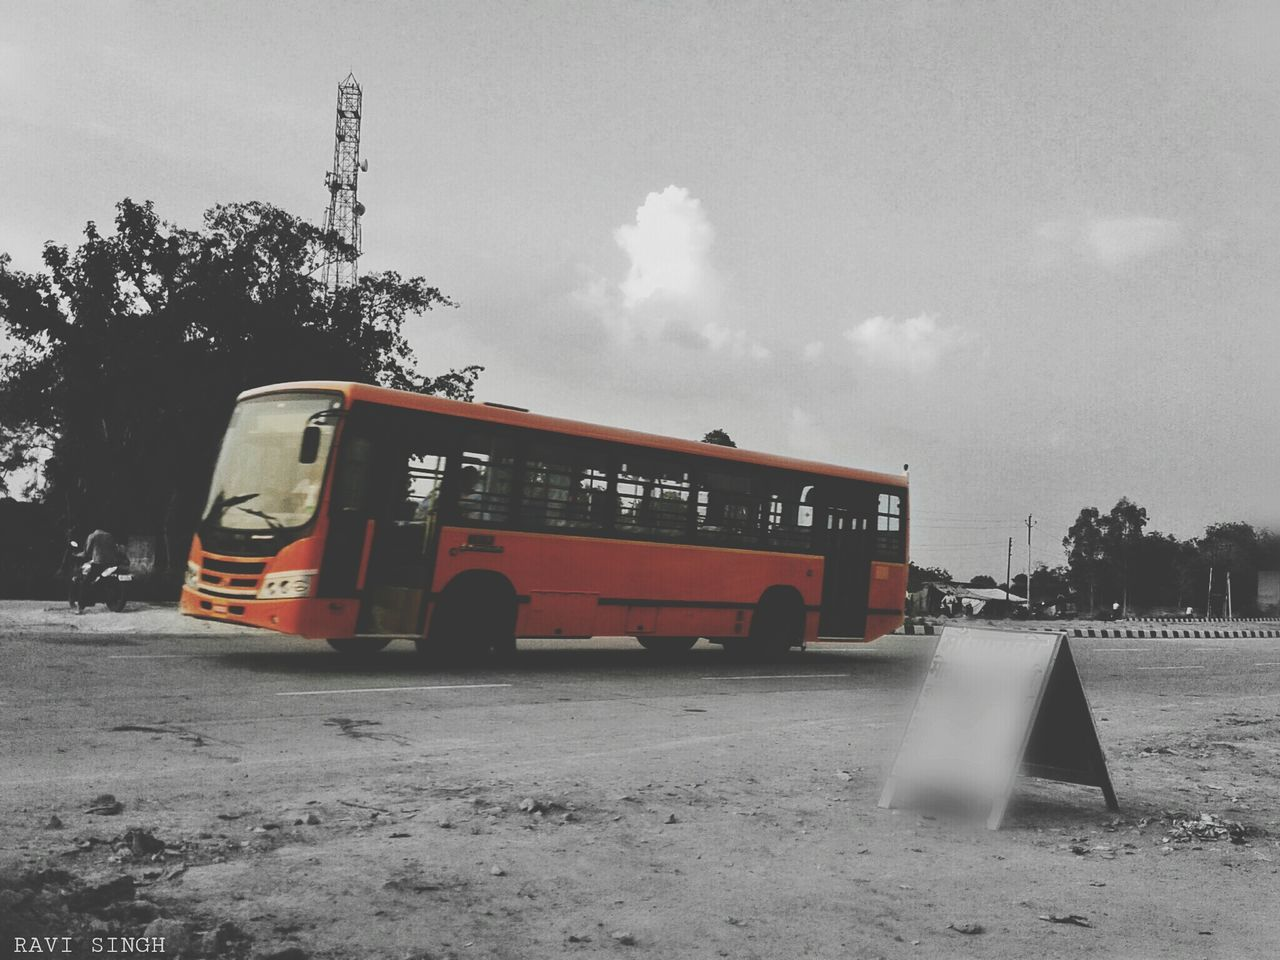 OO.. Hello World Monochrome On The Road Check This Out Taking Photos Blackandwhite Getting Inspired People Bored At Work Mobile Photography